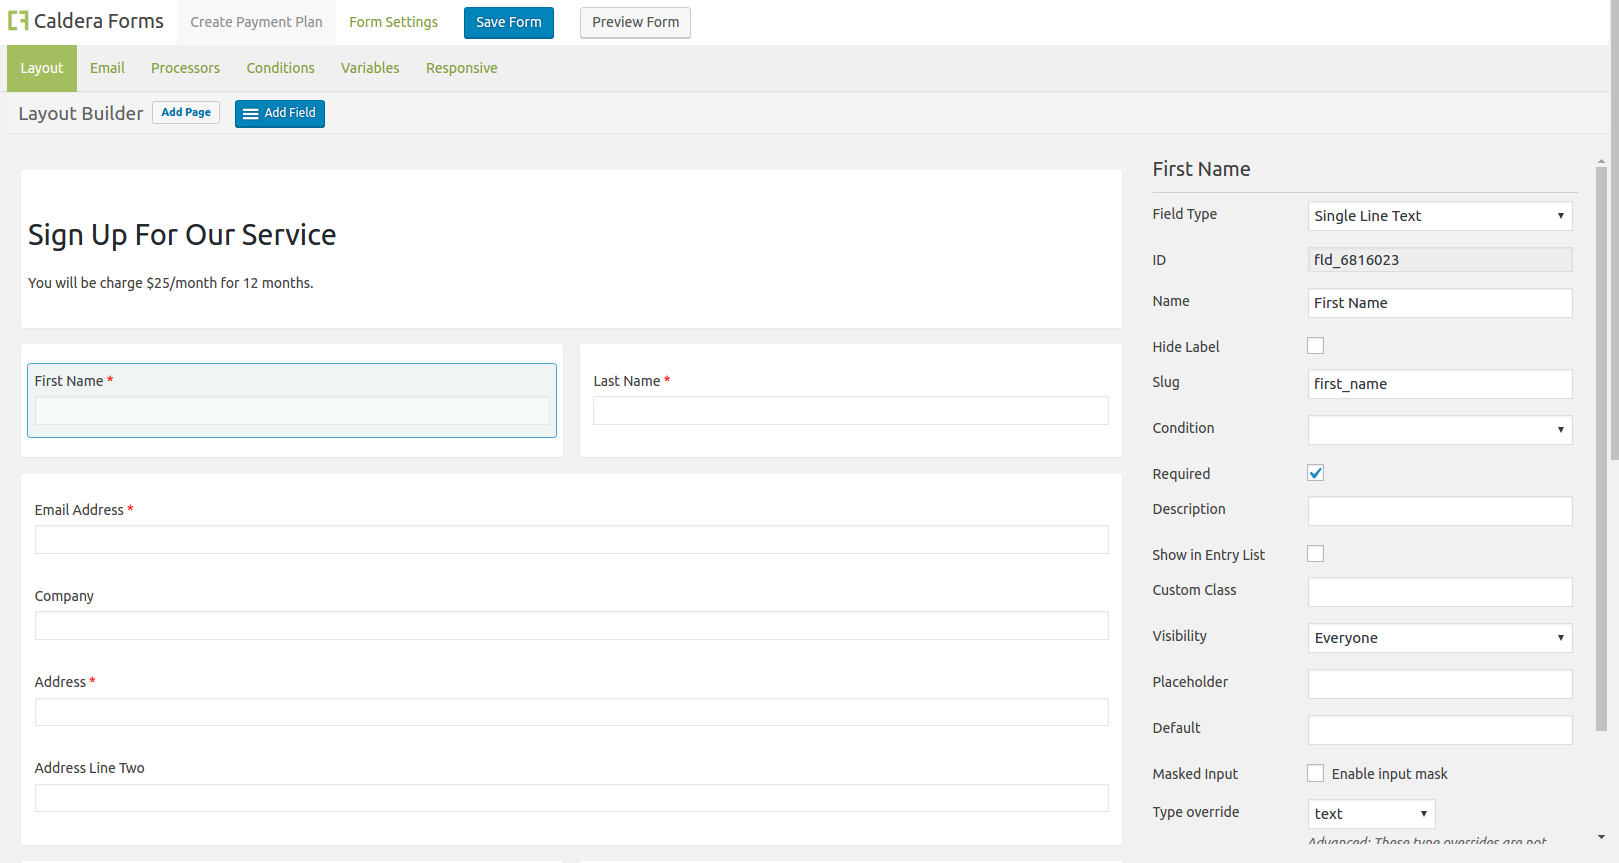 Form layout for the template of the recurring payment plans for Authorize.net and Caldera Forms.